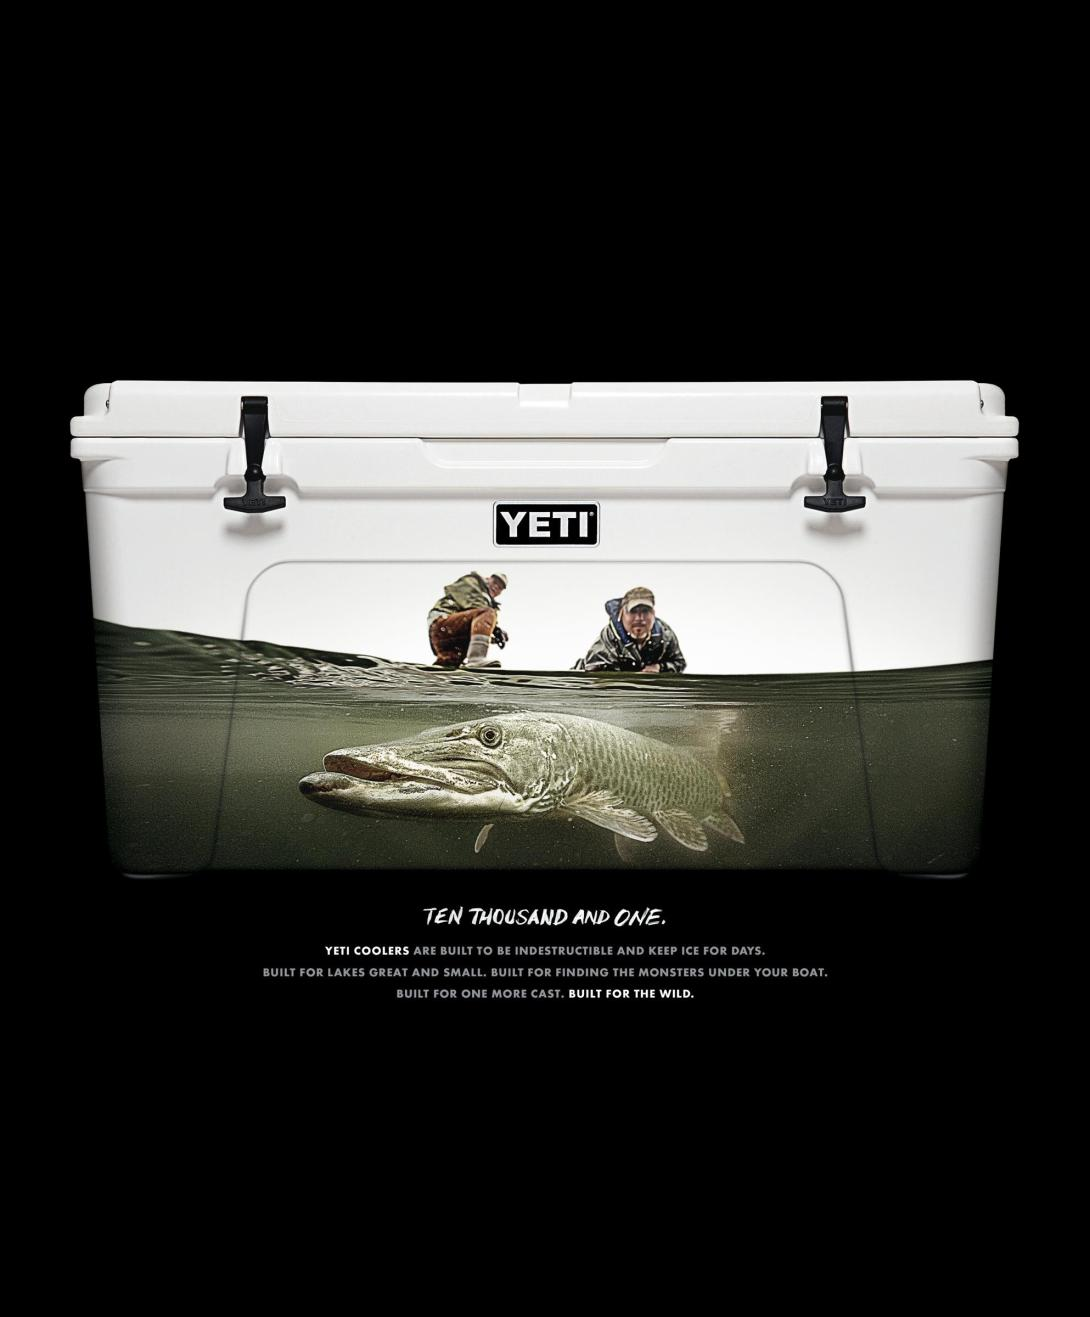 yeti_coolers_print-musky_aotw-3